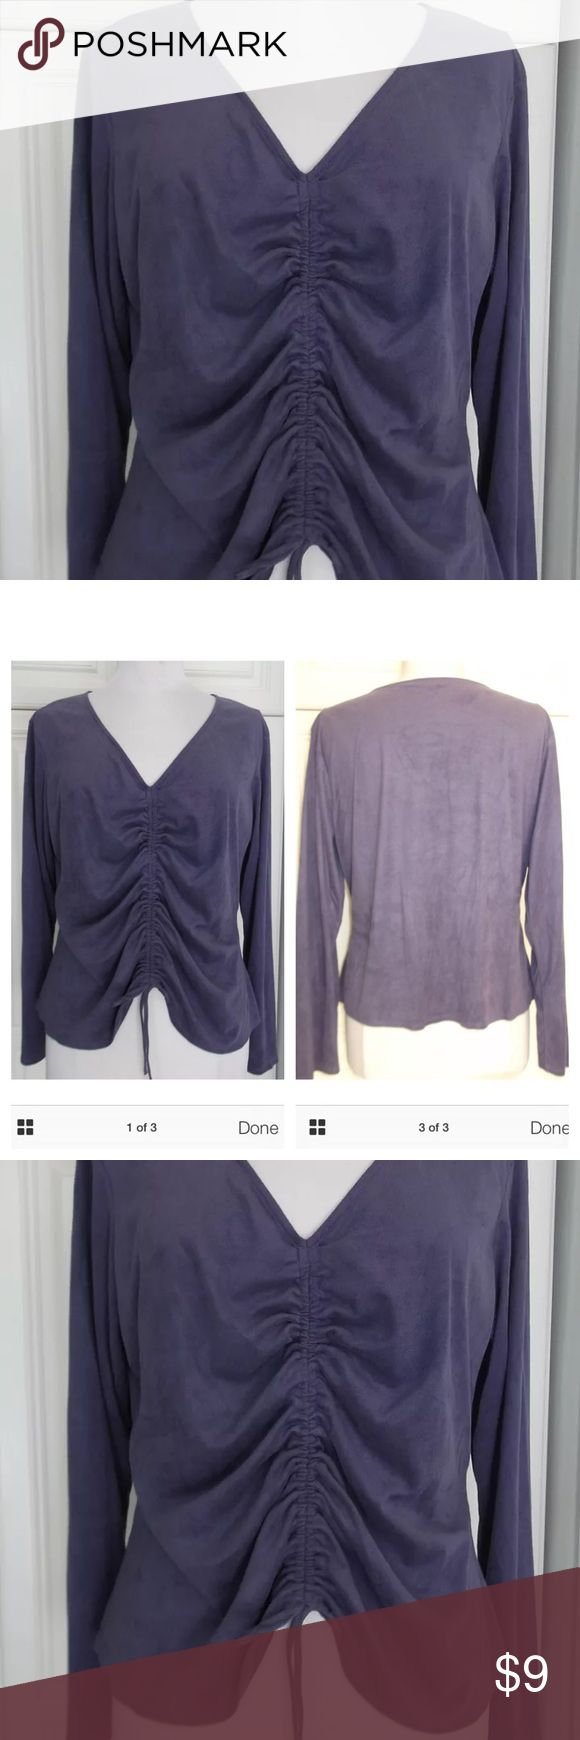 """Marks & Spencer XL purple faux suede blouse In very good condition no spots stains or tears,n good condition, no spots, stains or tears. Purple V-neck with long sleeves. Gathering down front with adjustable drawstring. Feels and looks like the softest most expensive suede but is actually polyester and washable. Also available in another listing is a blue one. Check out my other items! ALL MEASUREMENTS ARE TAKEN FLAT AND UNSTRETCHED  Chest: 45"""" Waist: 40""""  Length: 25""""  Sleeves:24""""  Shoulders…"""